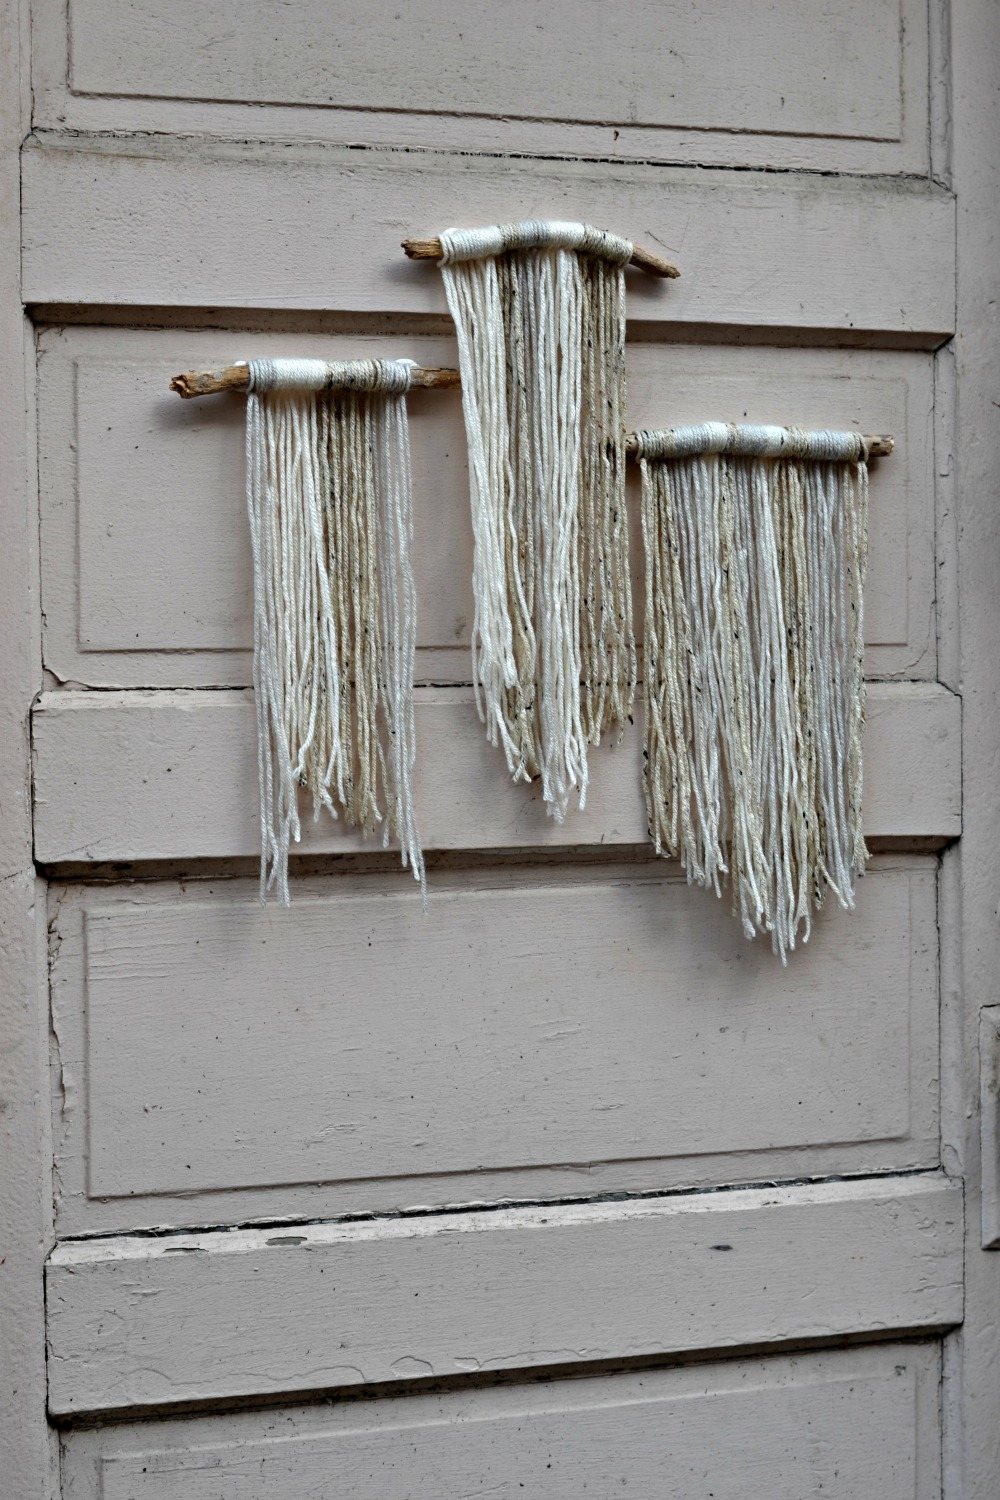 Basic Diy Yarn And Driftwood Macrame Wall Hanging For